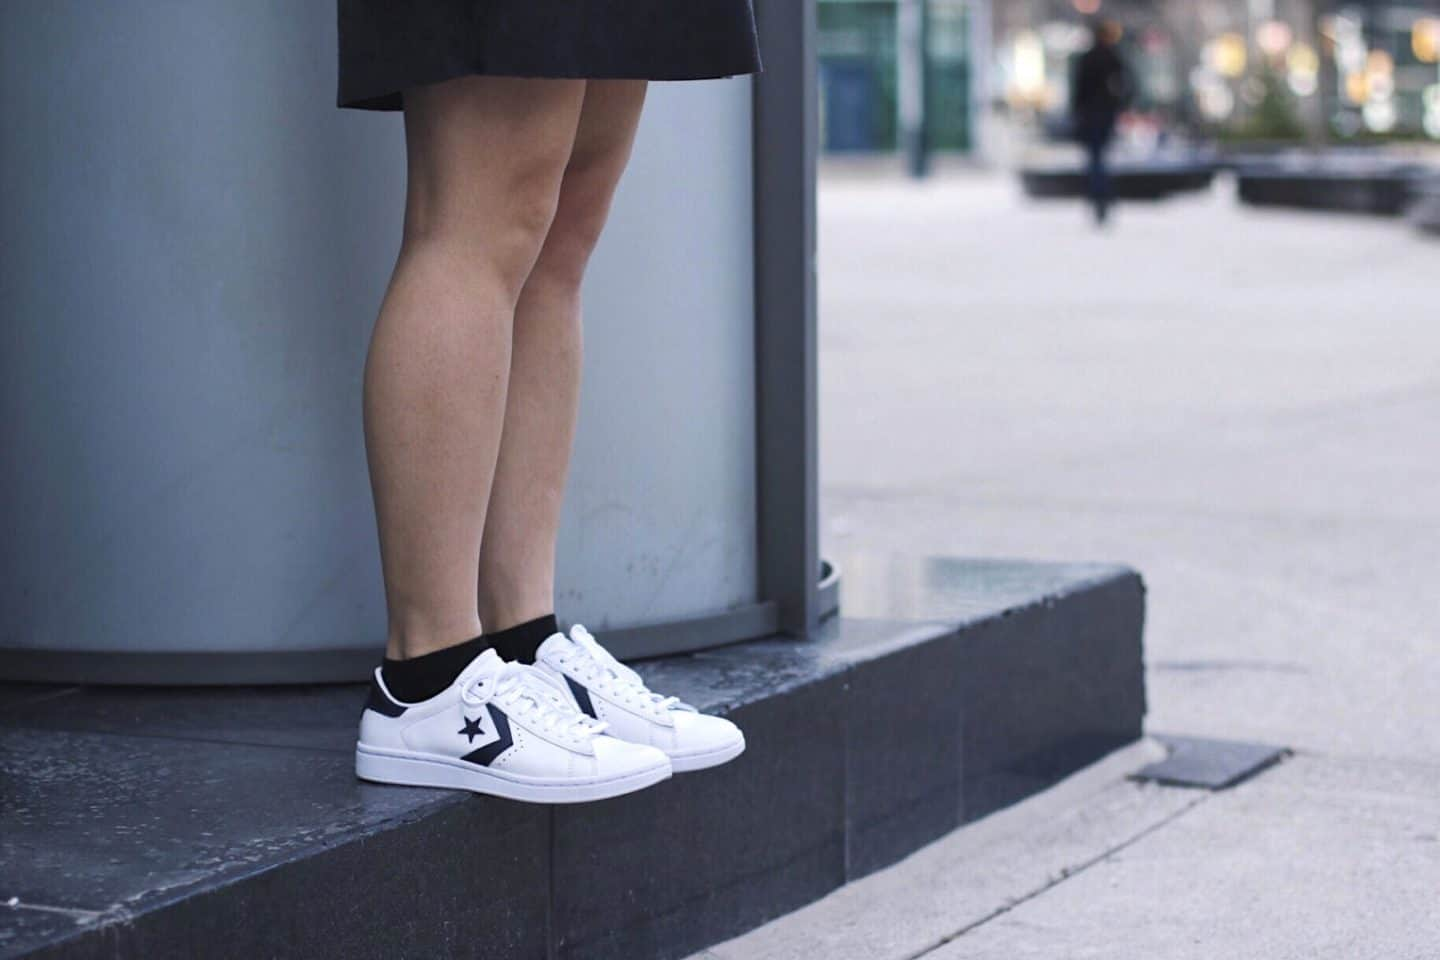 How to style dresses with sneakers | spring outfit ideas | tips on styling Converse | grey suede slip dress with off-white ivory moto jacket and Converse Pro Leather LP sneakers | Diary of a Toronto Girl, a Canadian lifestyle blog